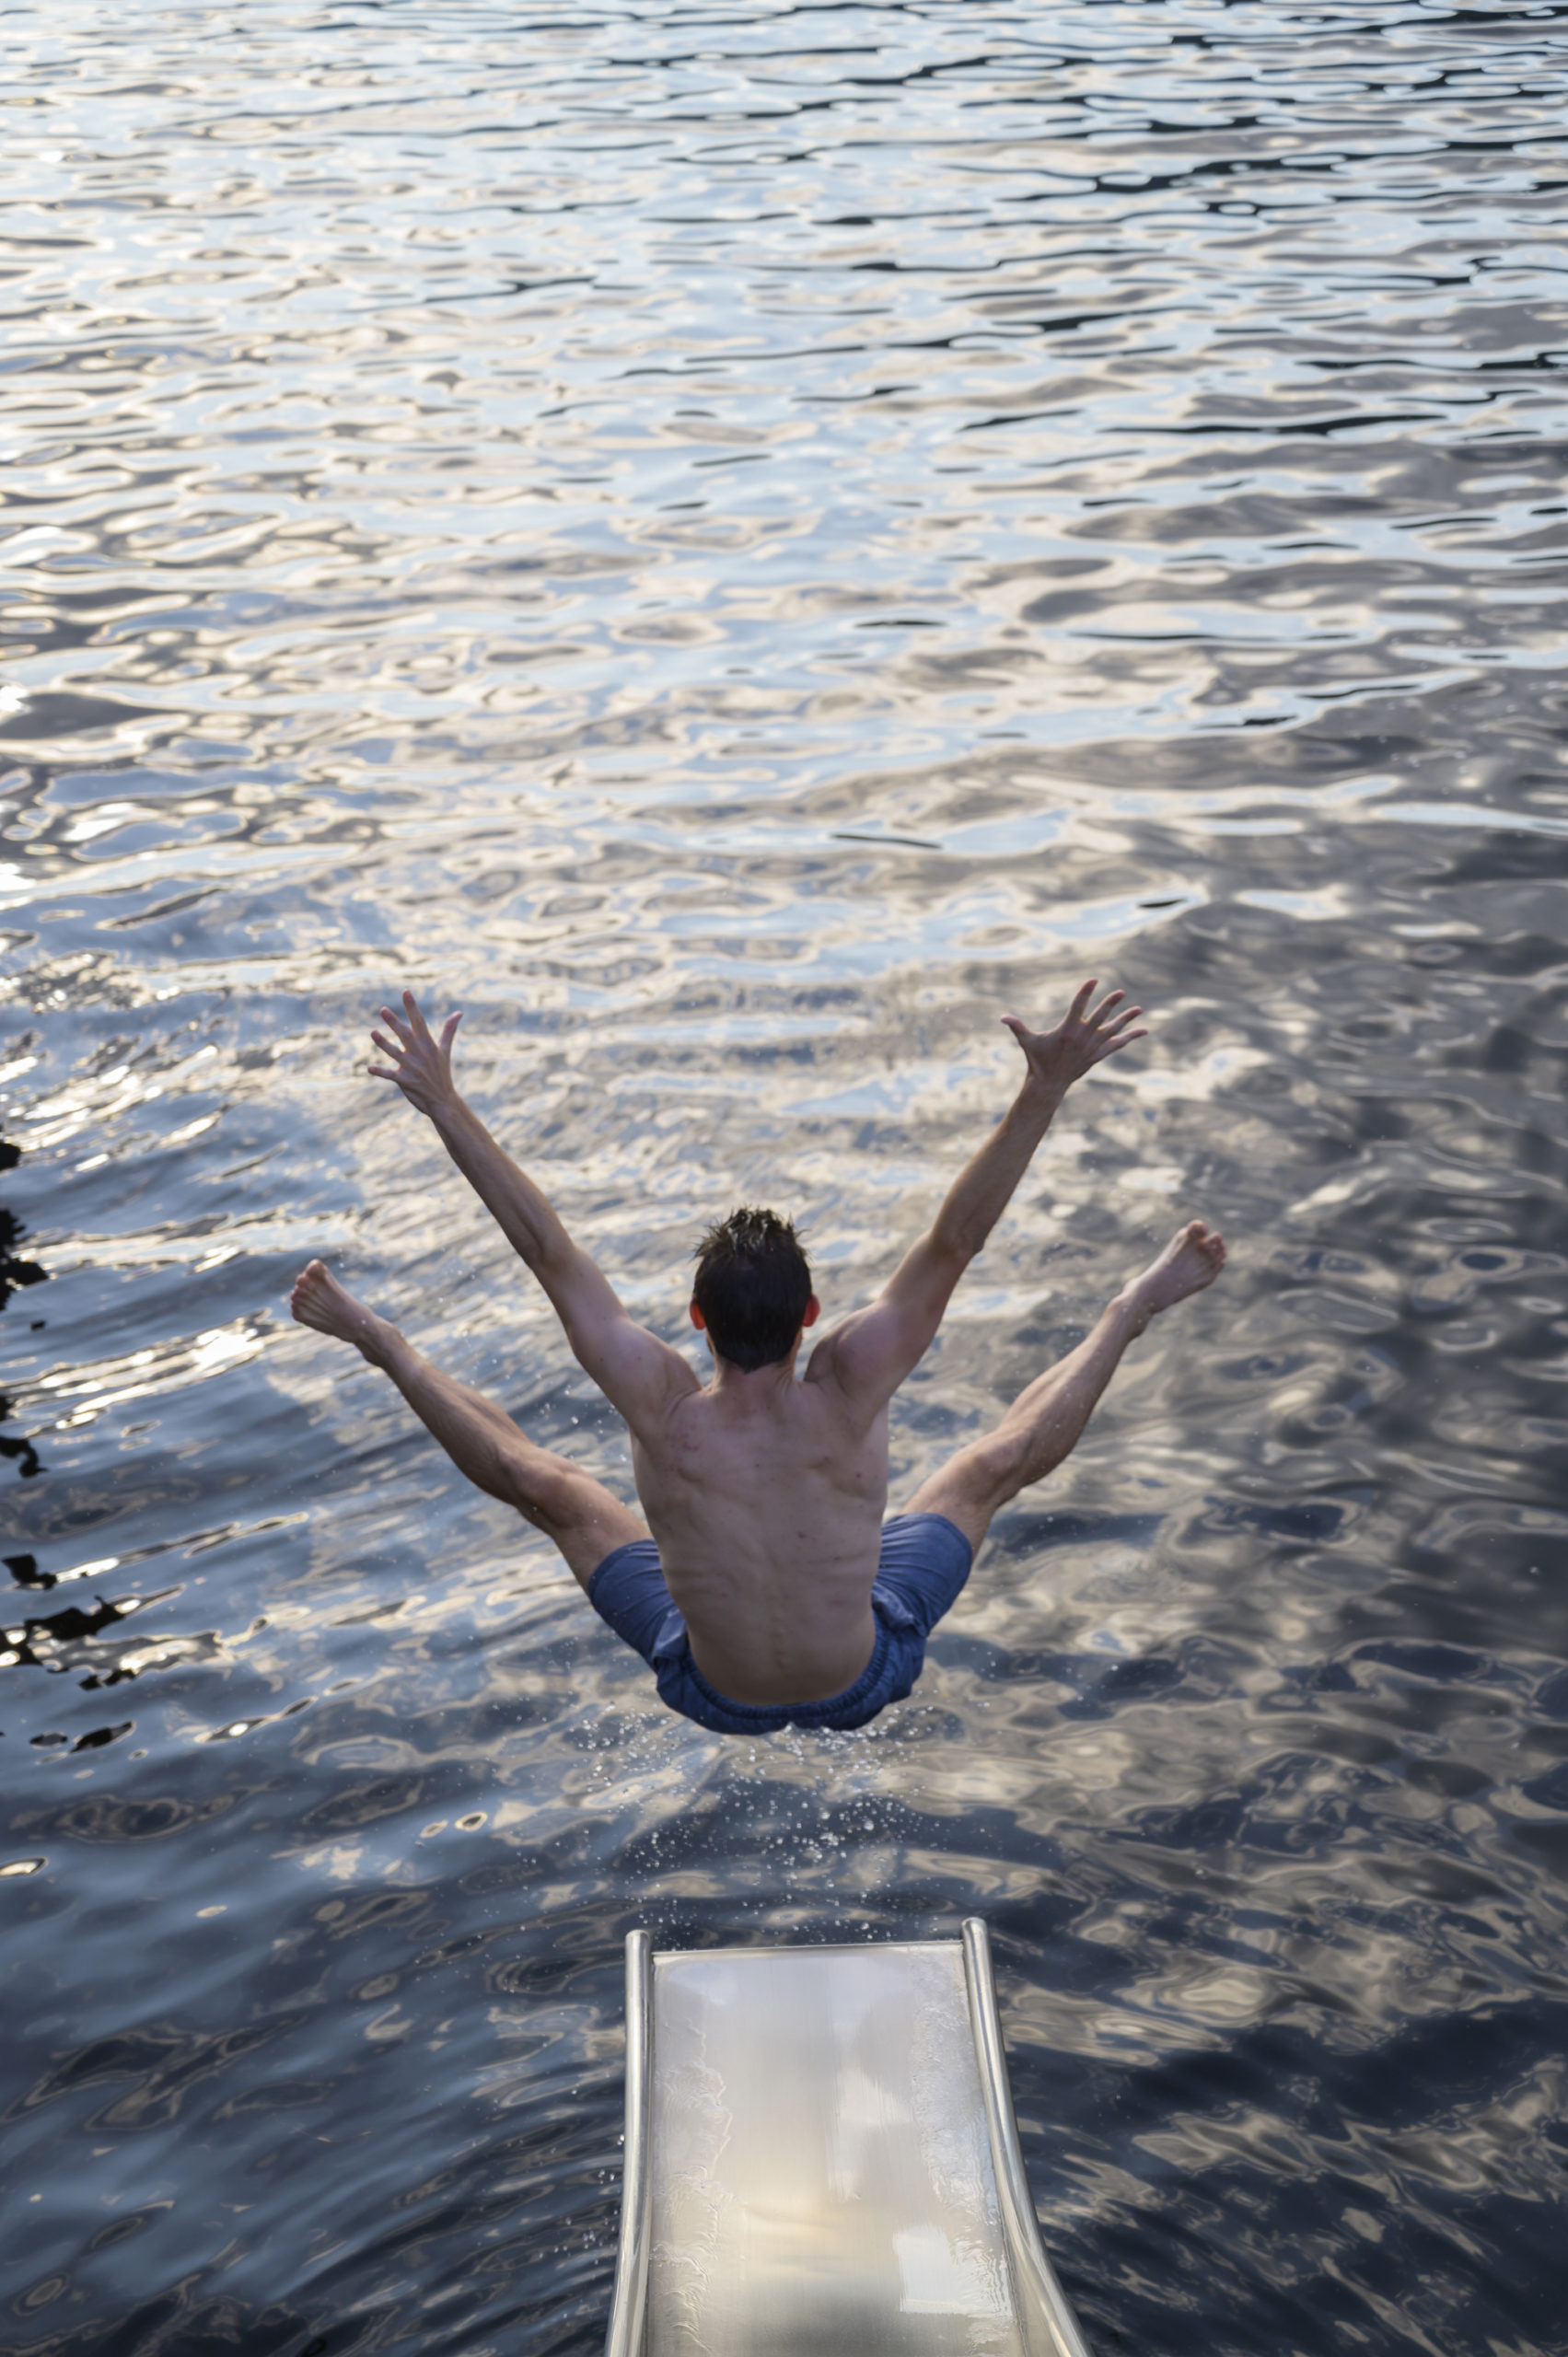 Wild Swimming In Winter: The Loony Dook